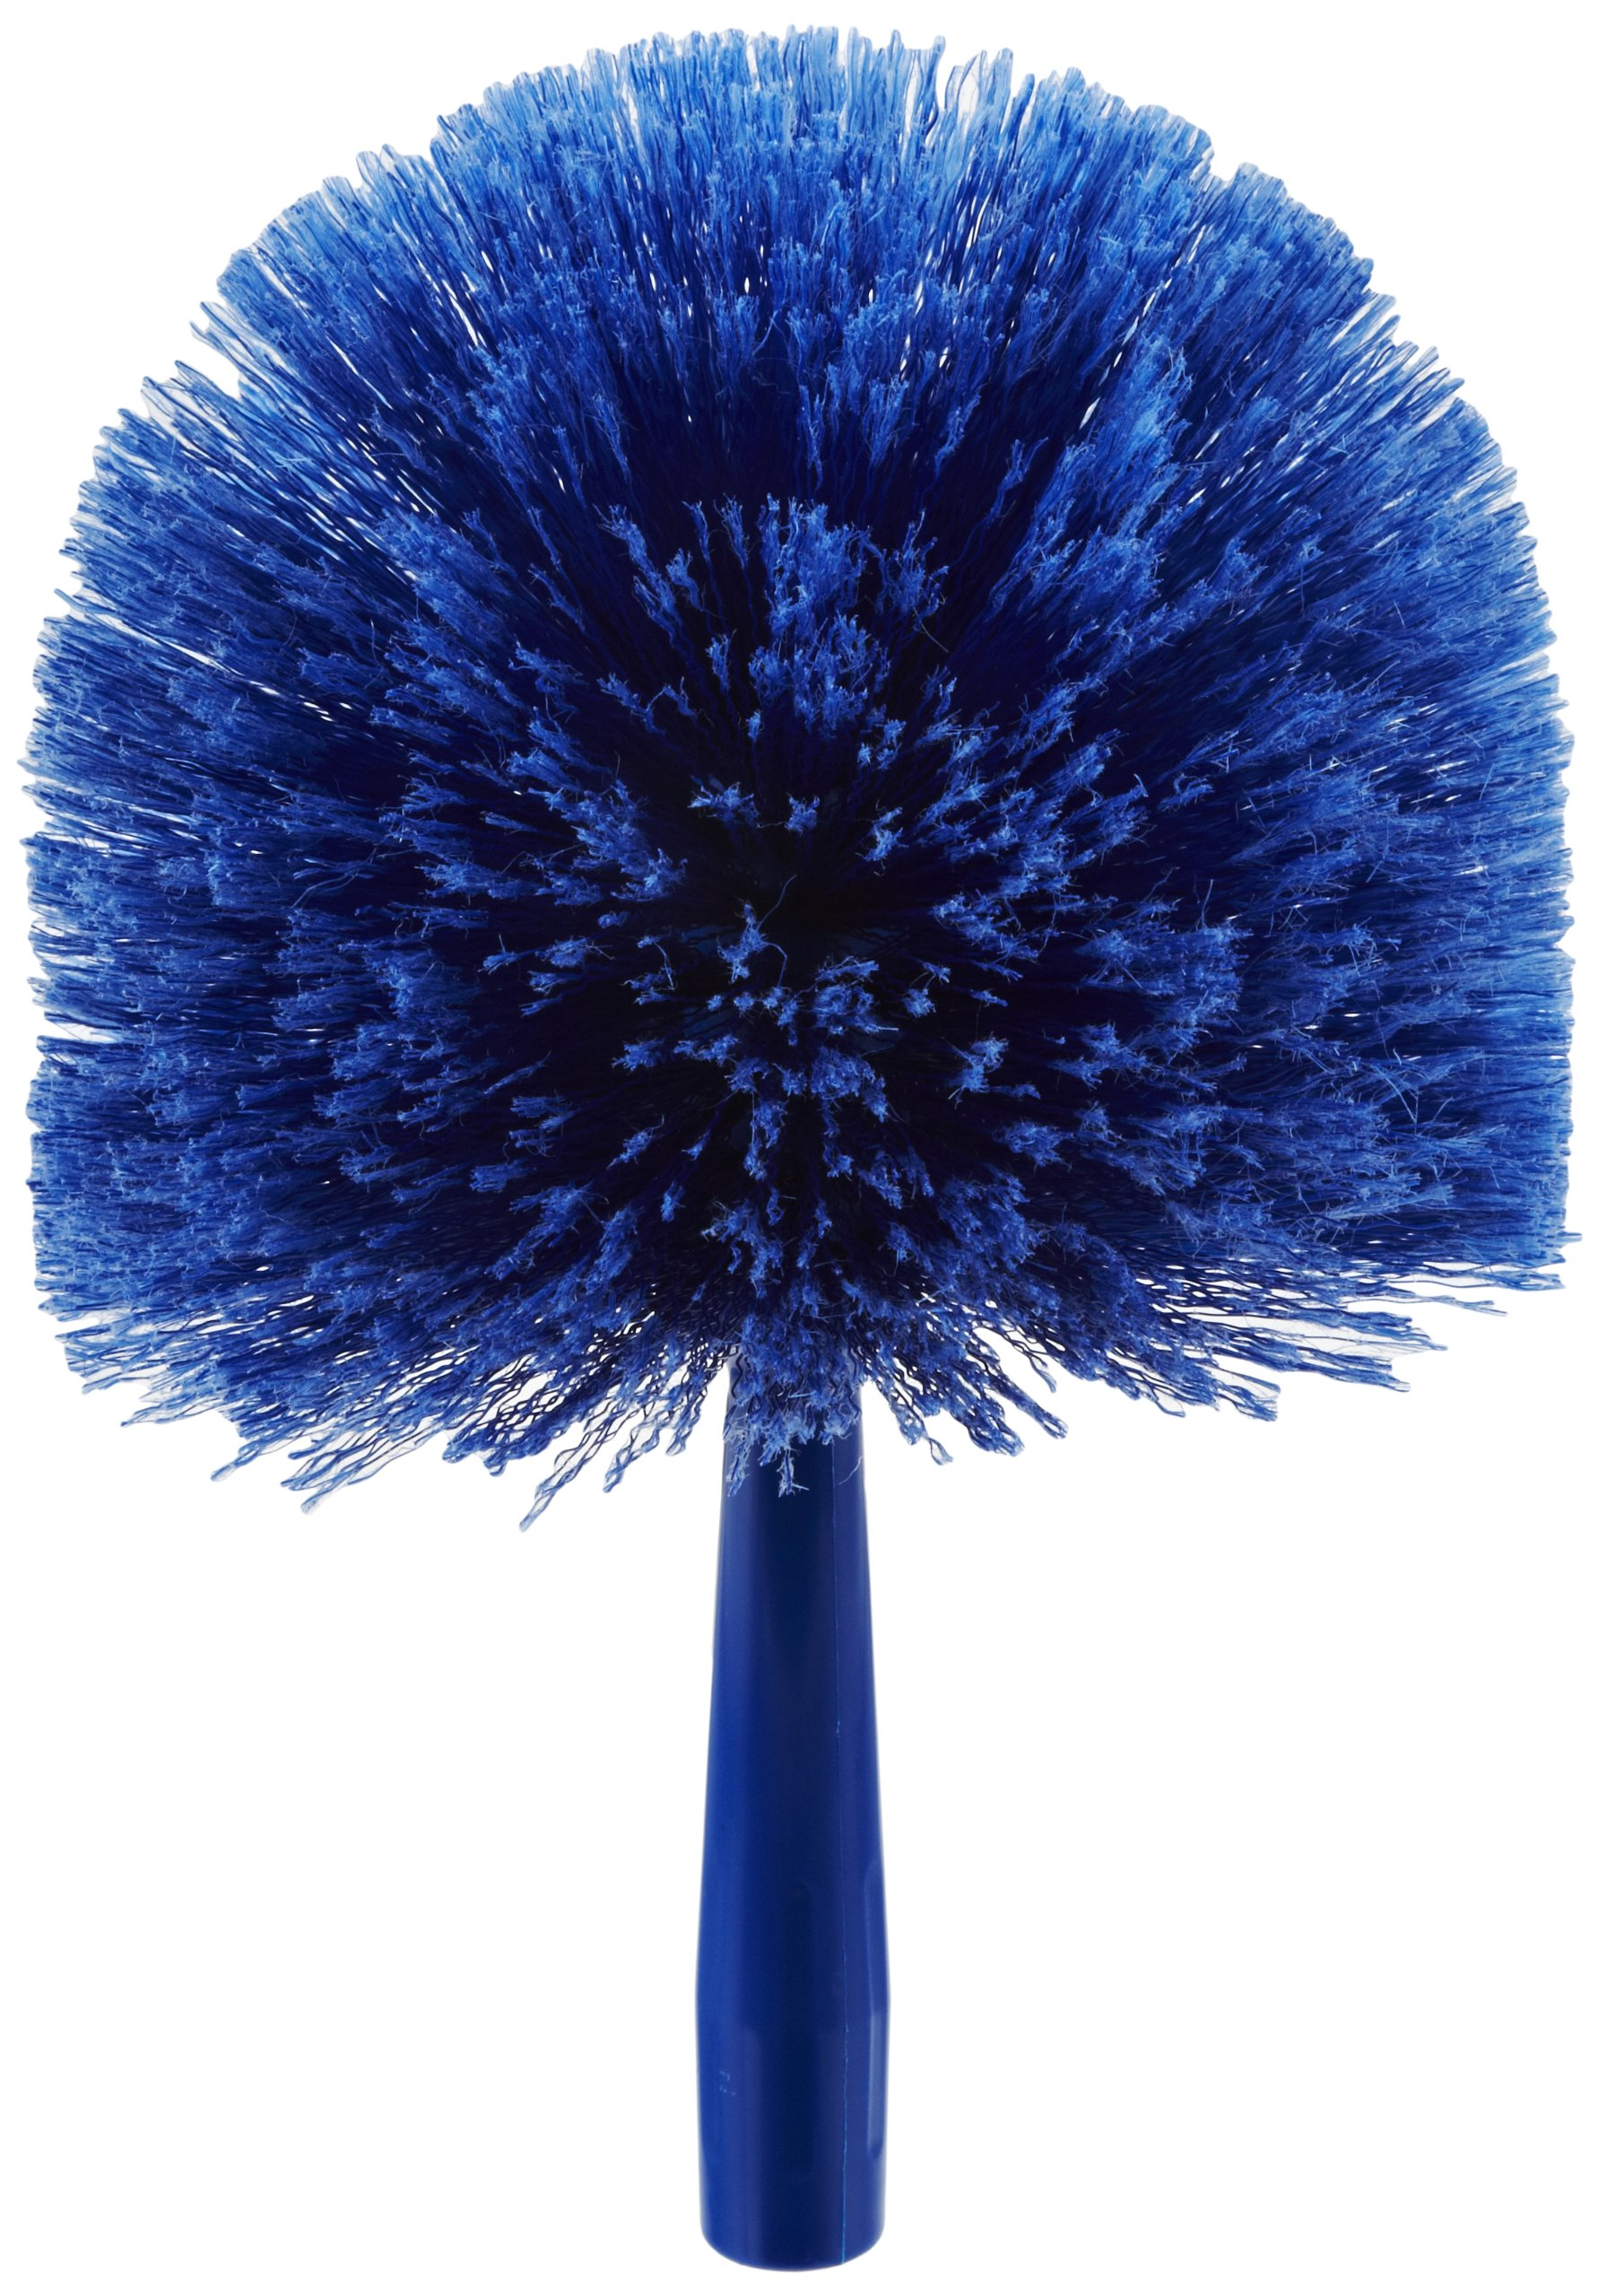 Carlisle 36340414 Flo-Pac Round Duster, Soft Flagged PVC Bristles, 7'' Overall Diameter x 9'' Overall Length, 2-1/2'' Bristle Trim, Blue (Case of 12)